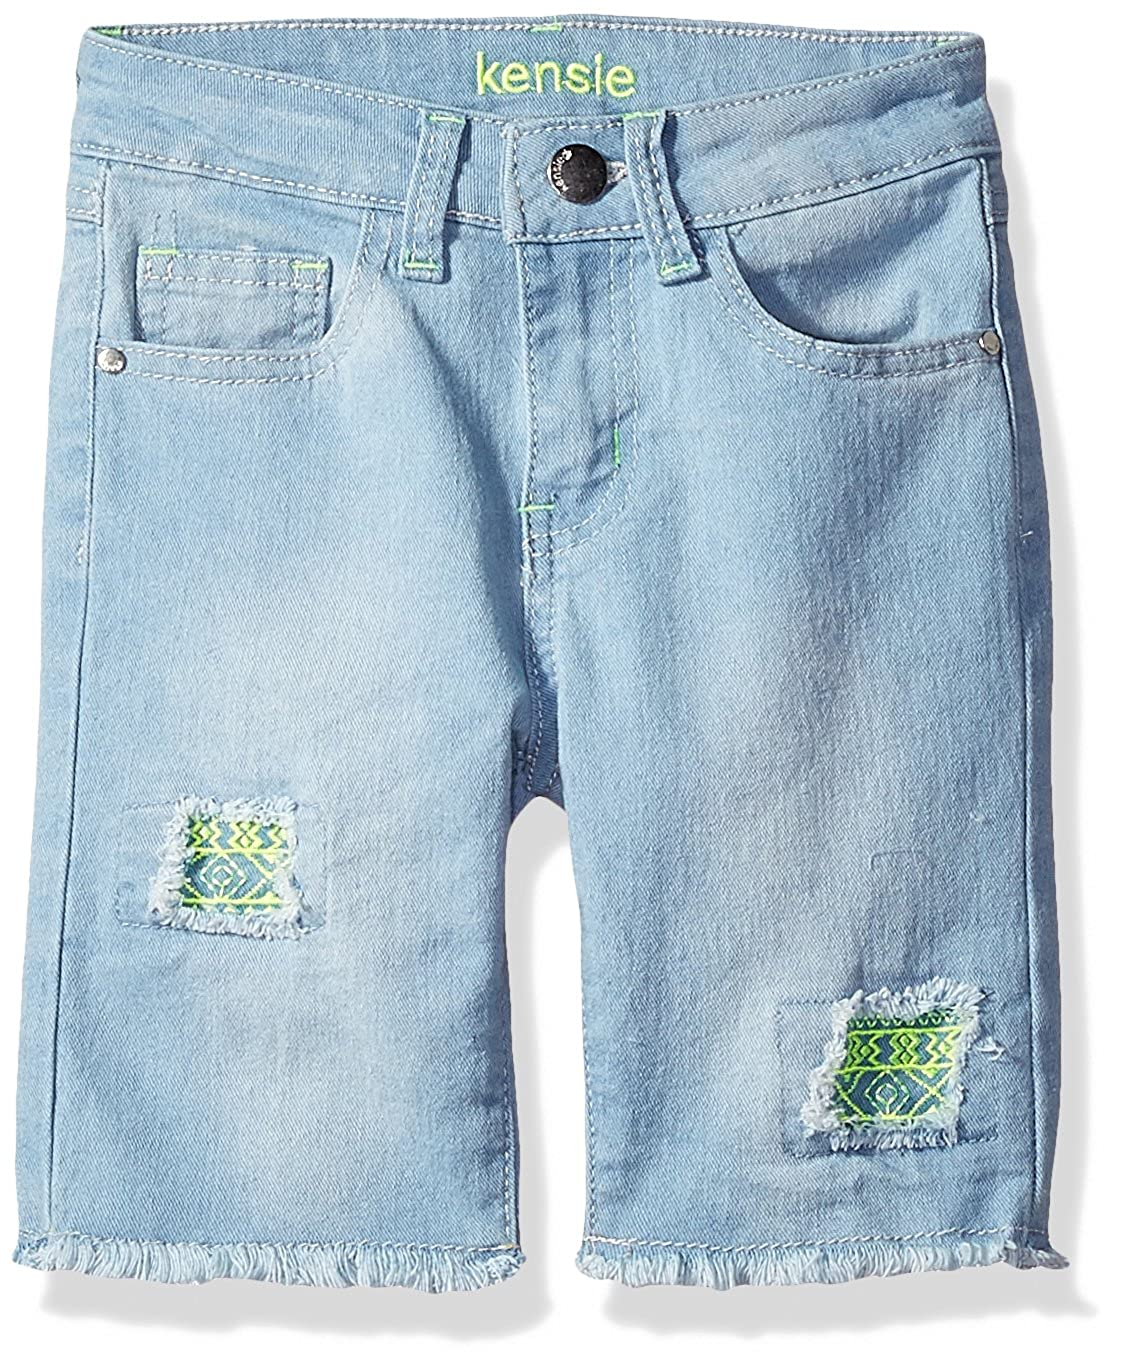 kensie SHORTS ガールズ B01N7HJAUG 16|2943-light Blue Denim 2943-light Blue Denim 16